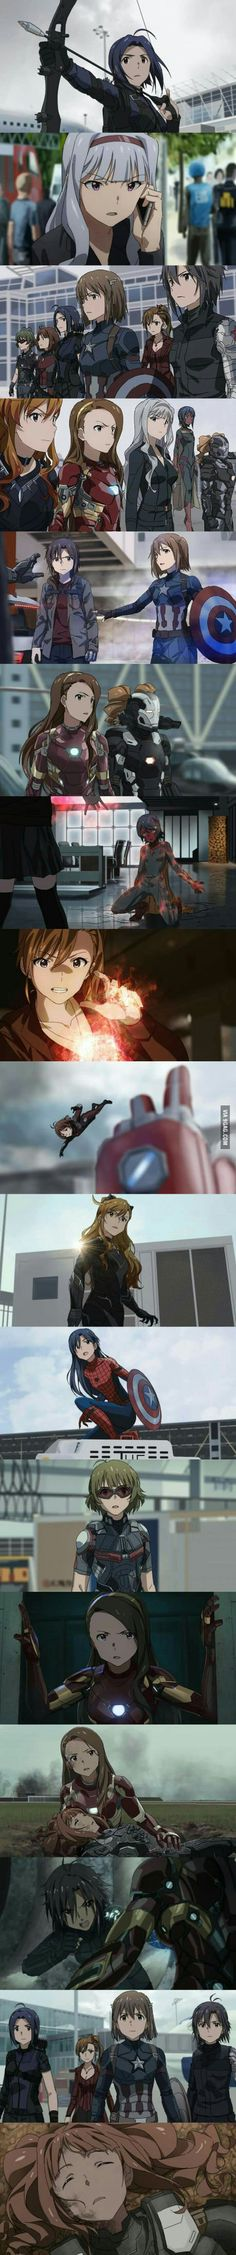 Captain America : Civil War [Anime Version]